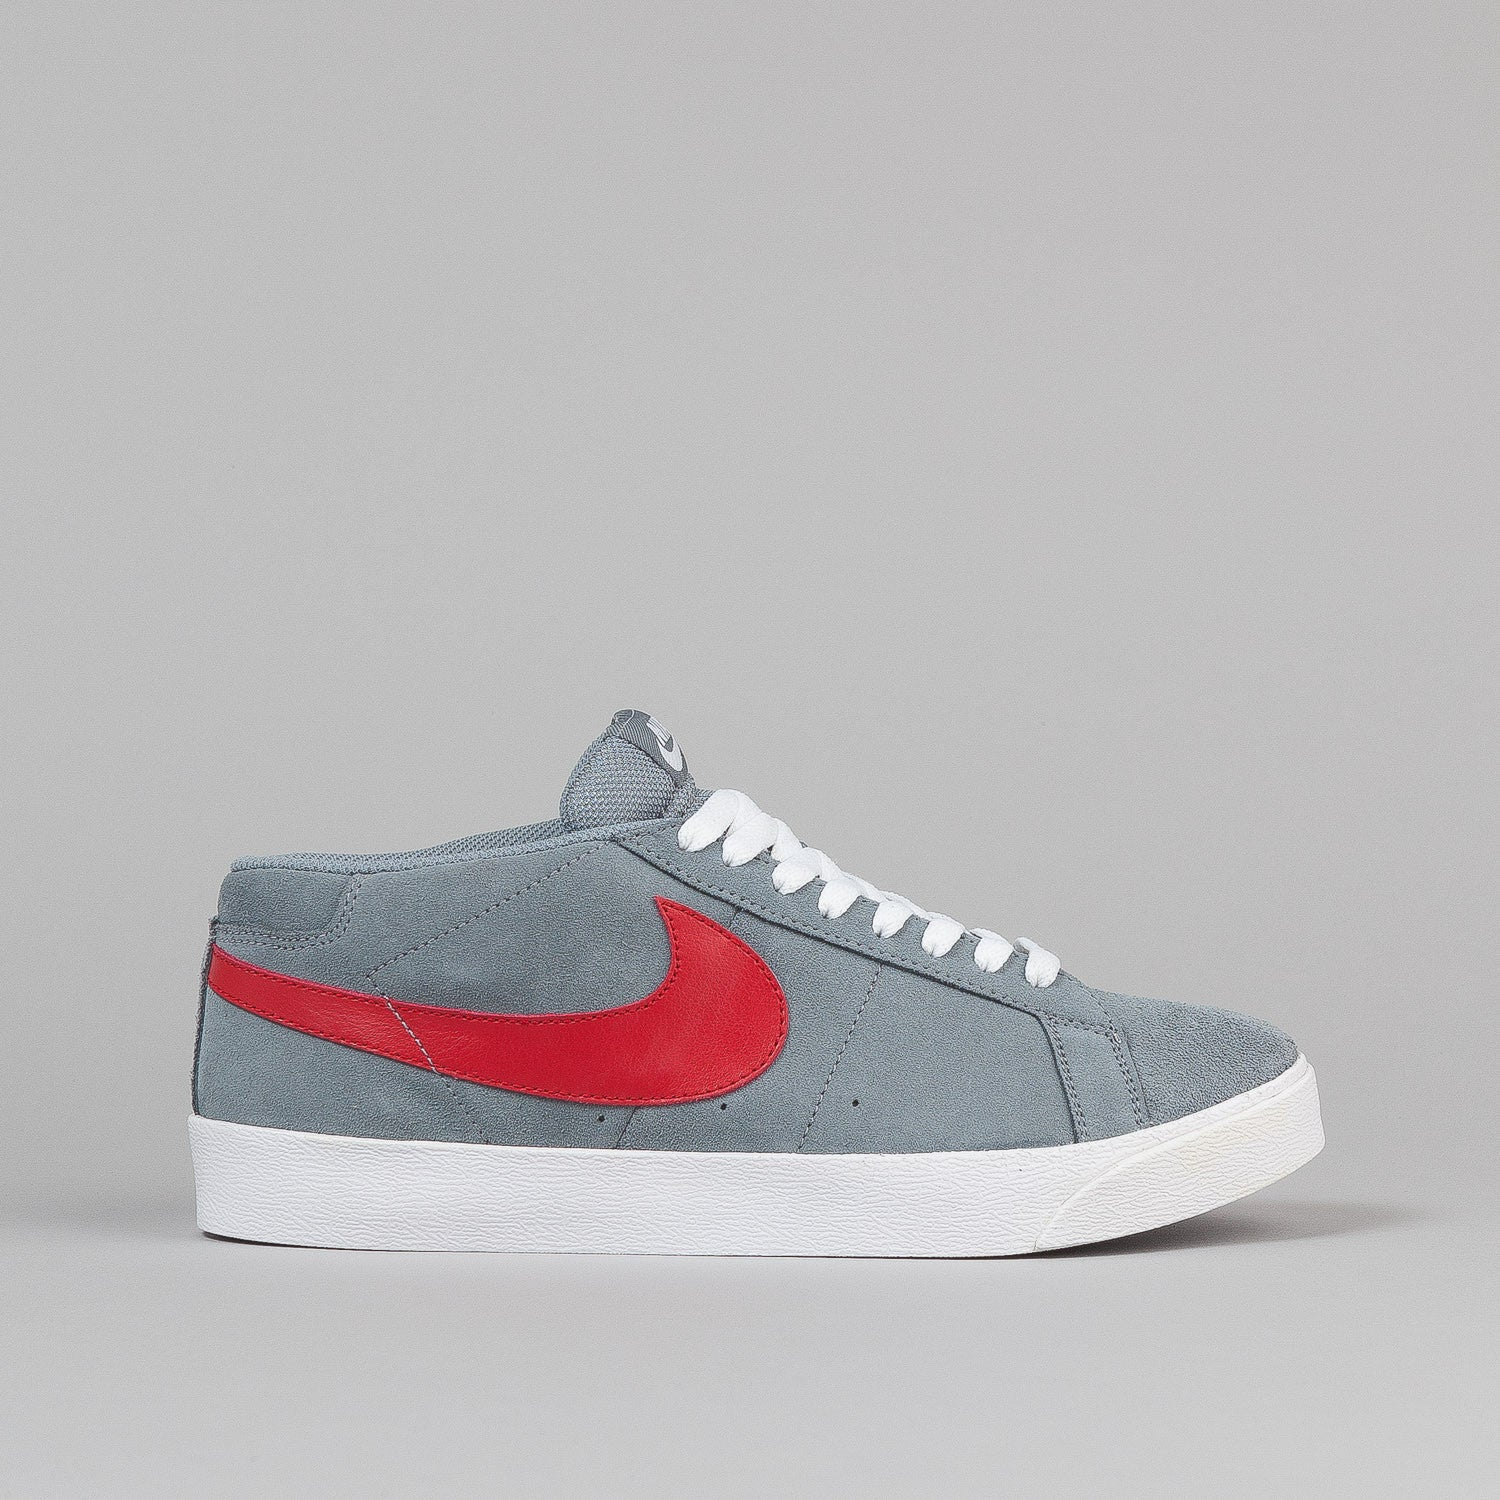 Nike SB Blazer CS Shoes